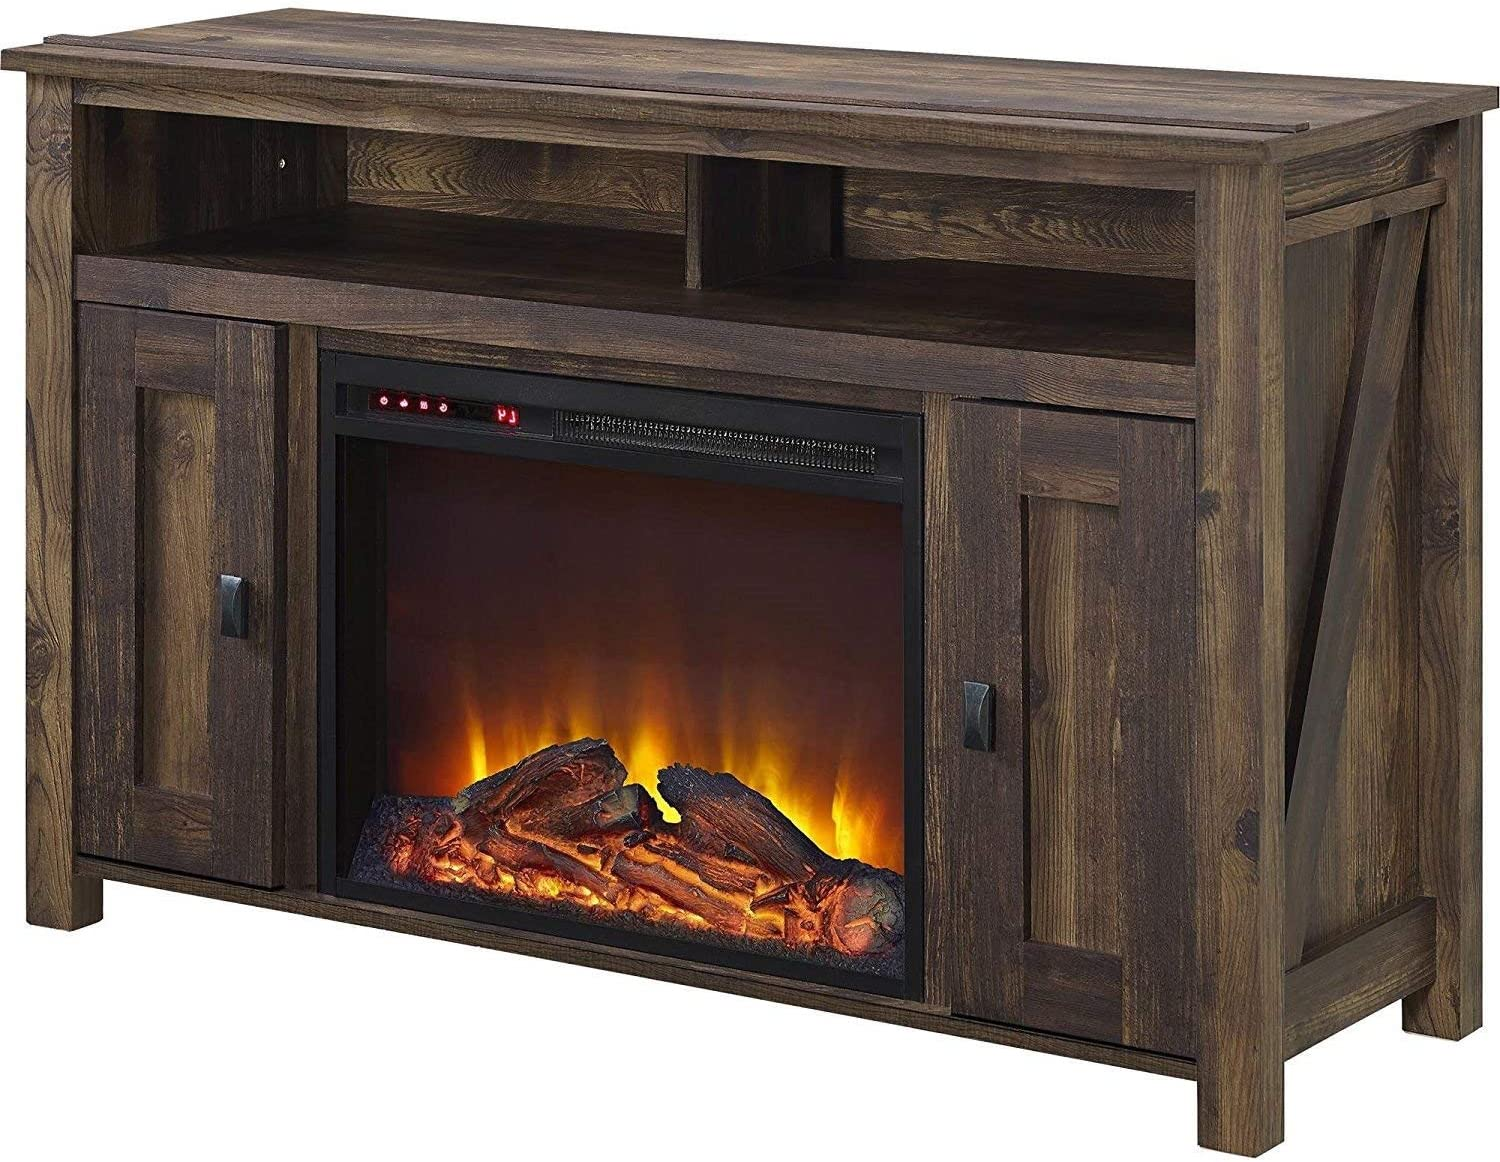 50 edge tv first of all fireplace